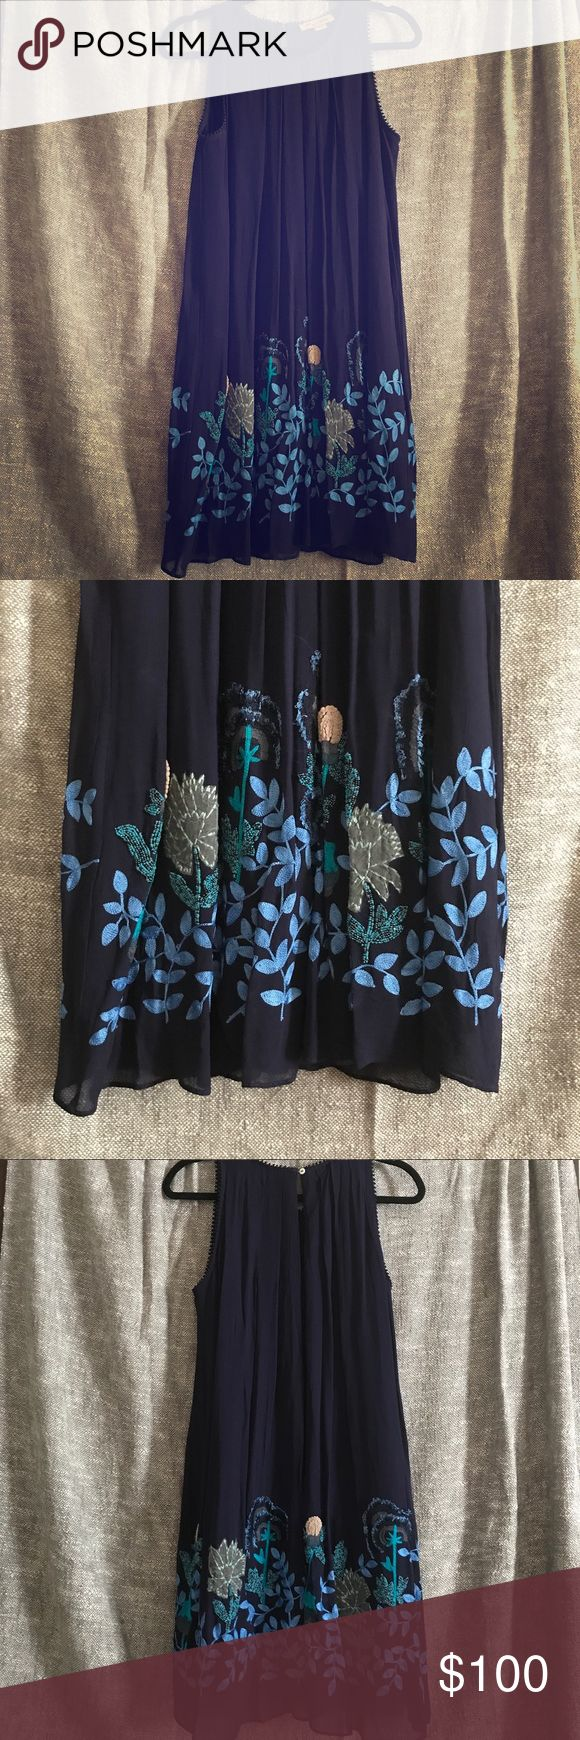 Navy blue, beaded summer dress, barely worn Navy summer dress perfect for daytime or going out! High neck, hits at the knee with beaded floral embellishment around the hemline. True to size. Only worn twice. Anthropologie Dresses Midi